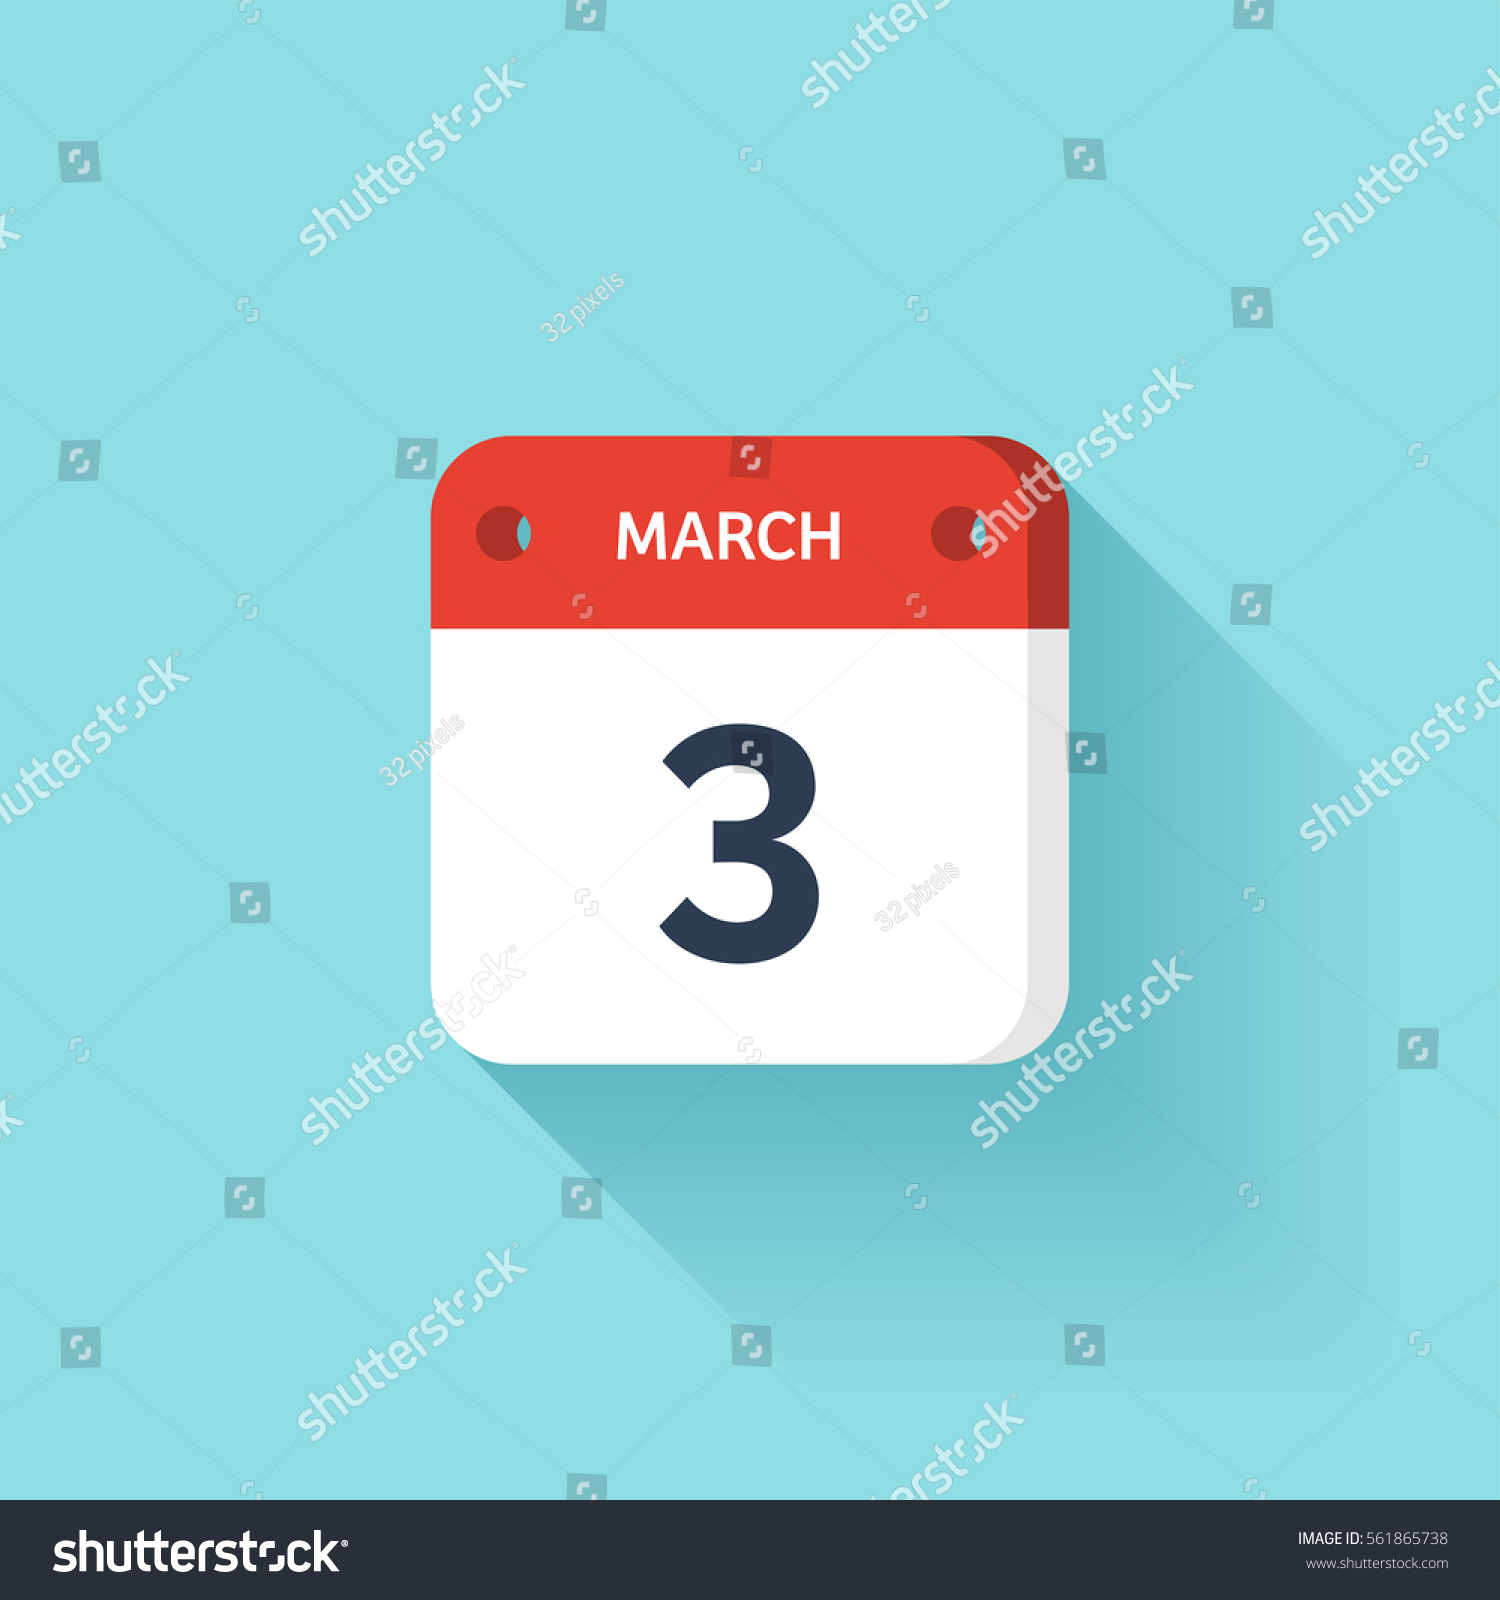 Calendar Illustration Vector : March isometric calendar icon shadowvector stock vector